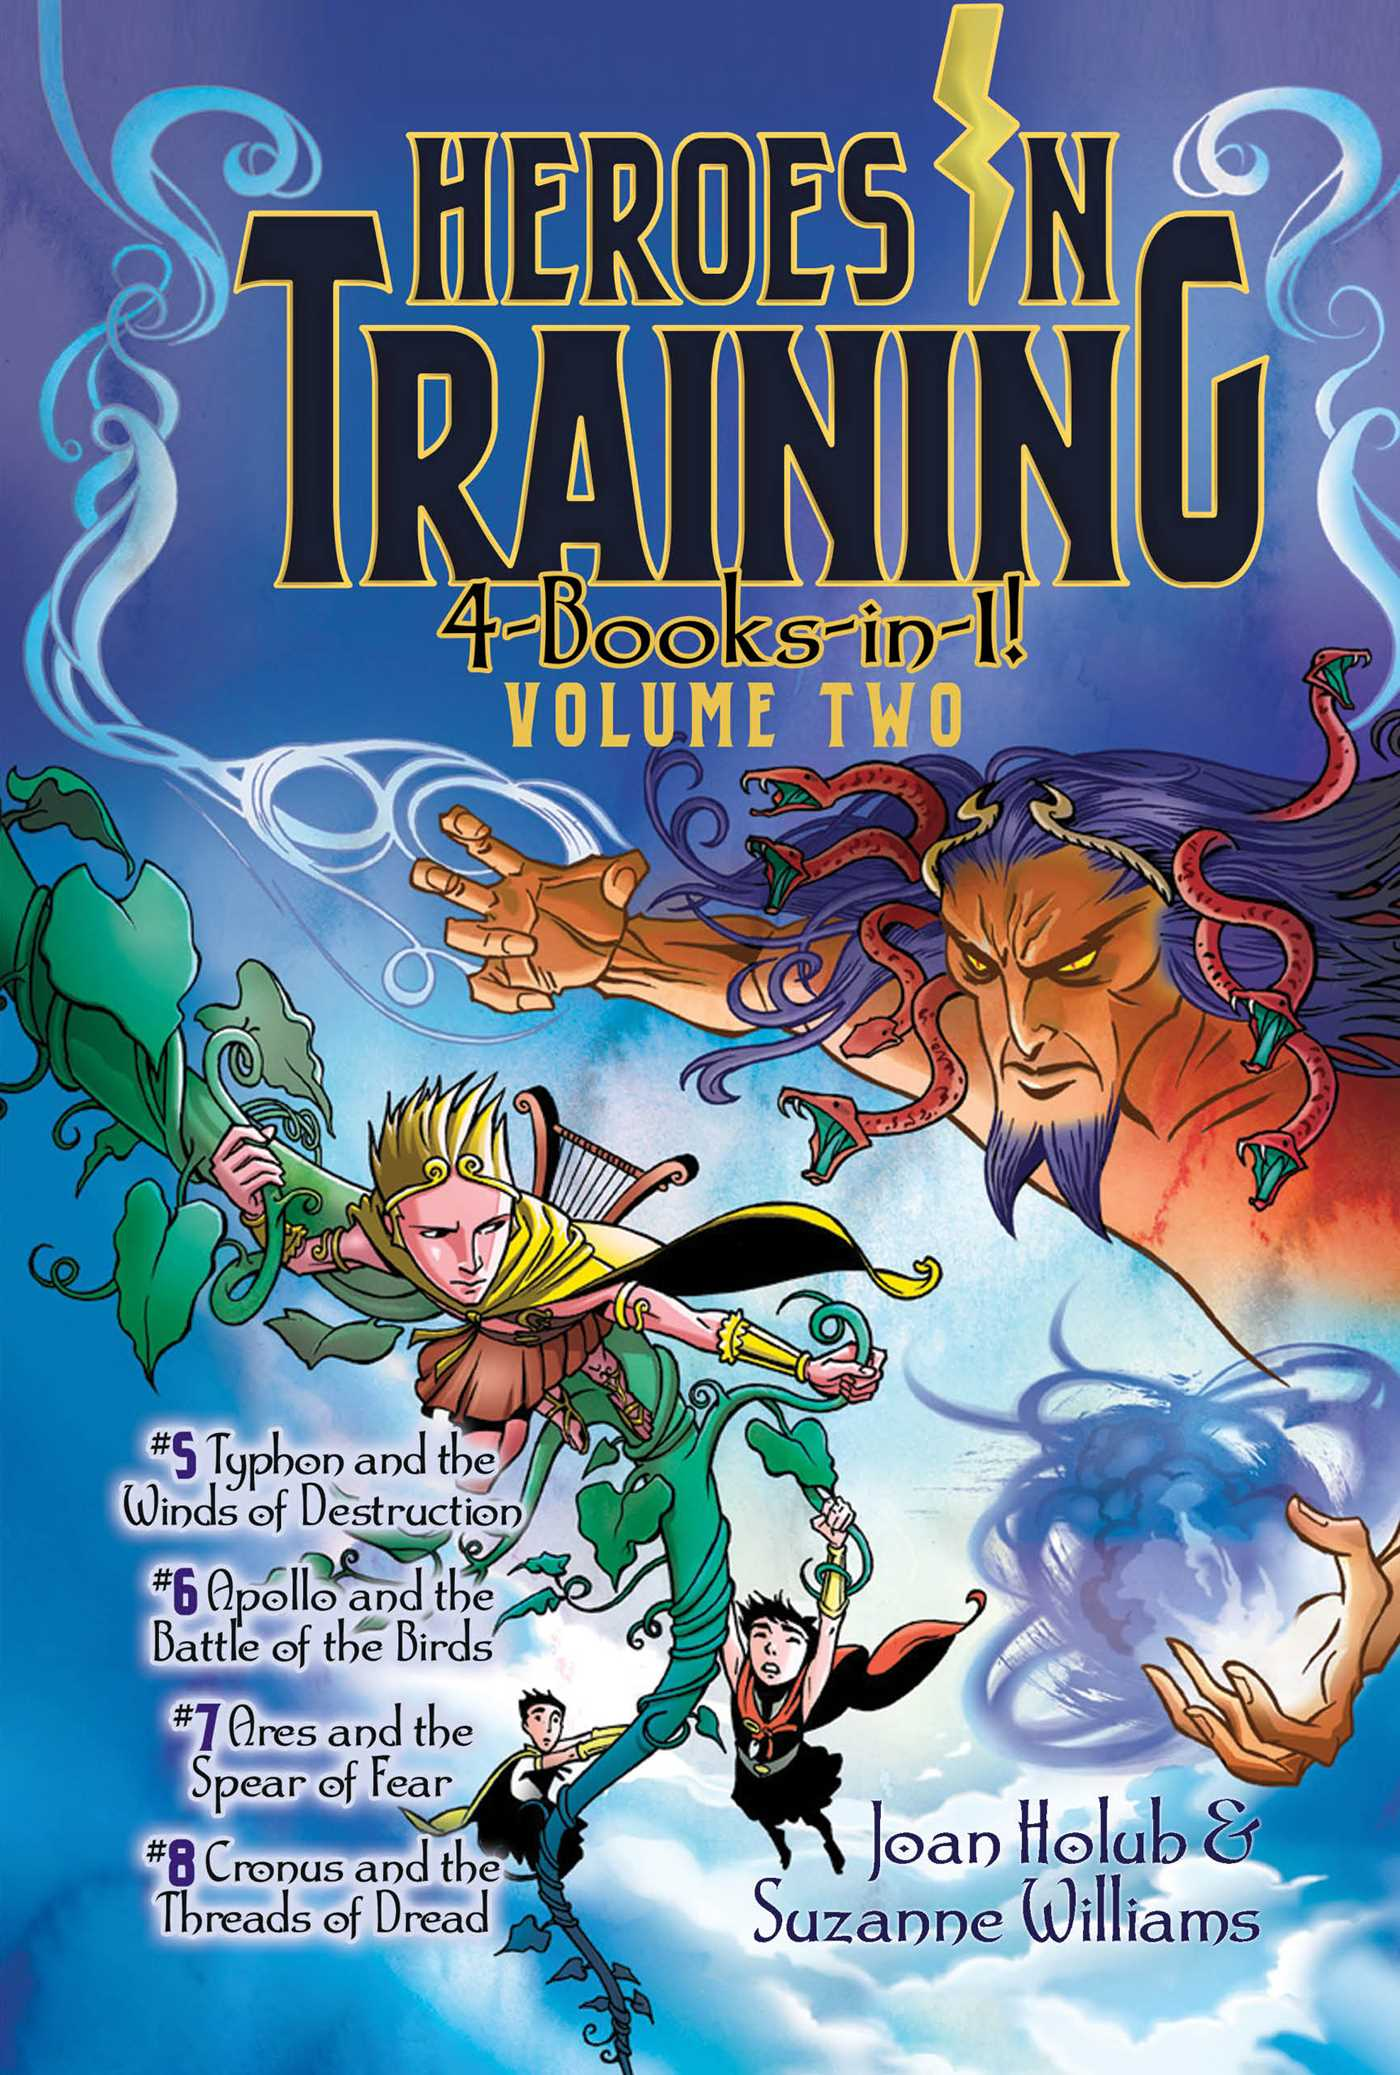 Heroes in training 4 books in 1 volume two 9781481475952 hr